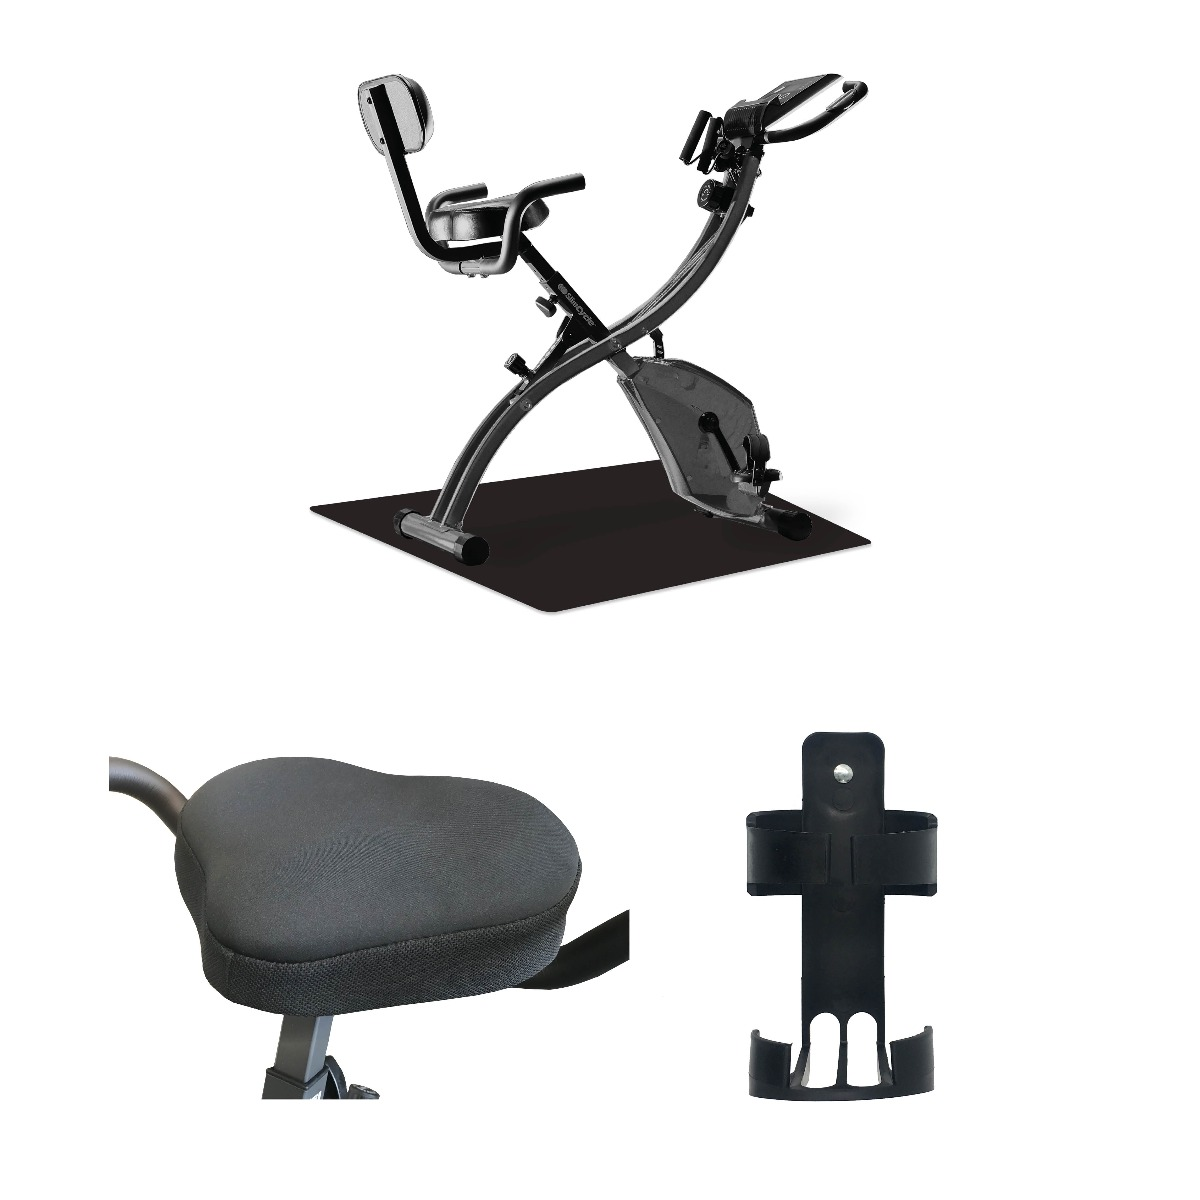 An image of Slim Cycle Comfort & Convenience Pack